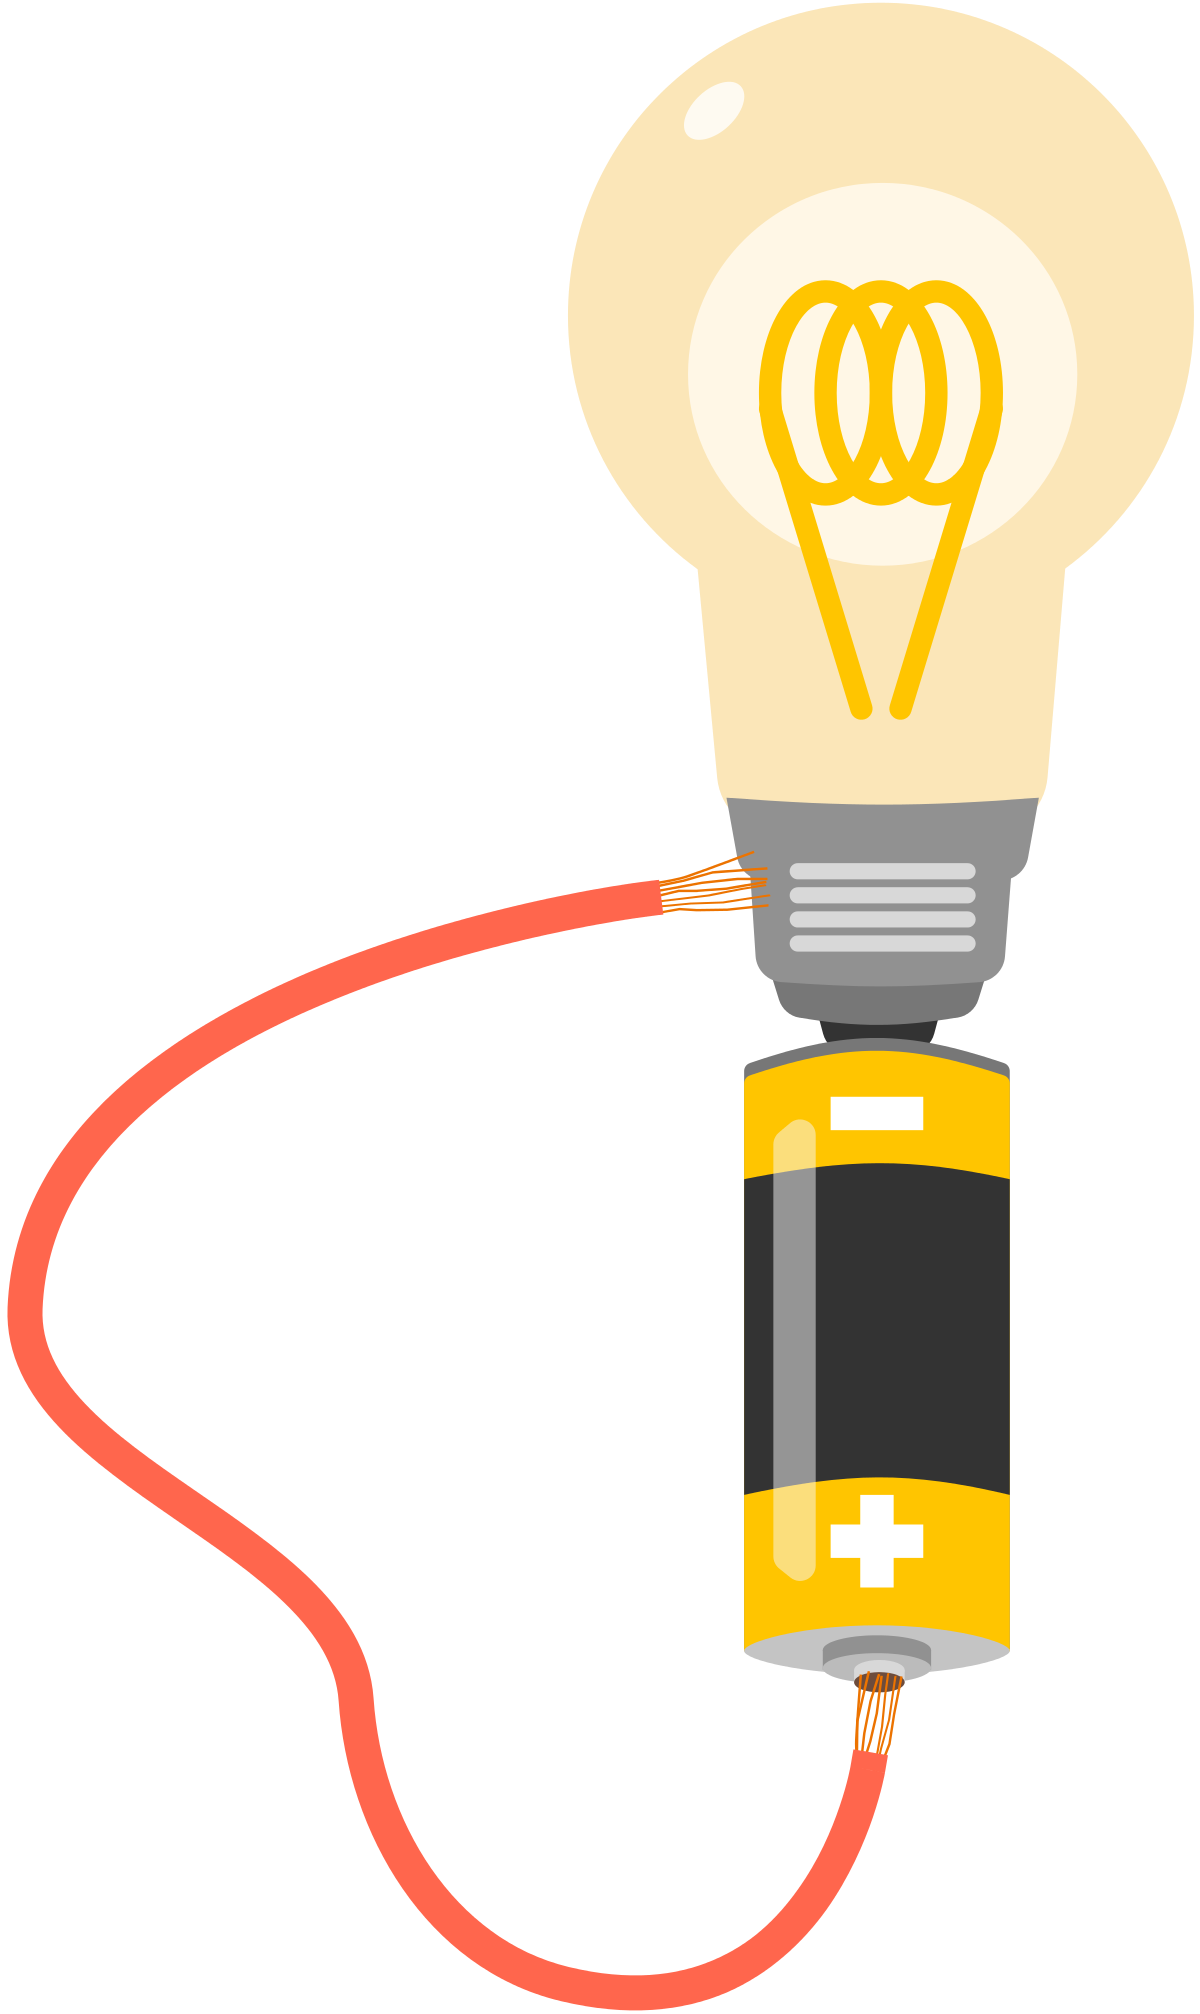 banner free download Bulb clipart electric bulb. Mit graduates struggle to